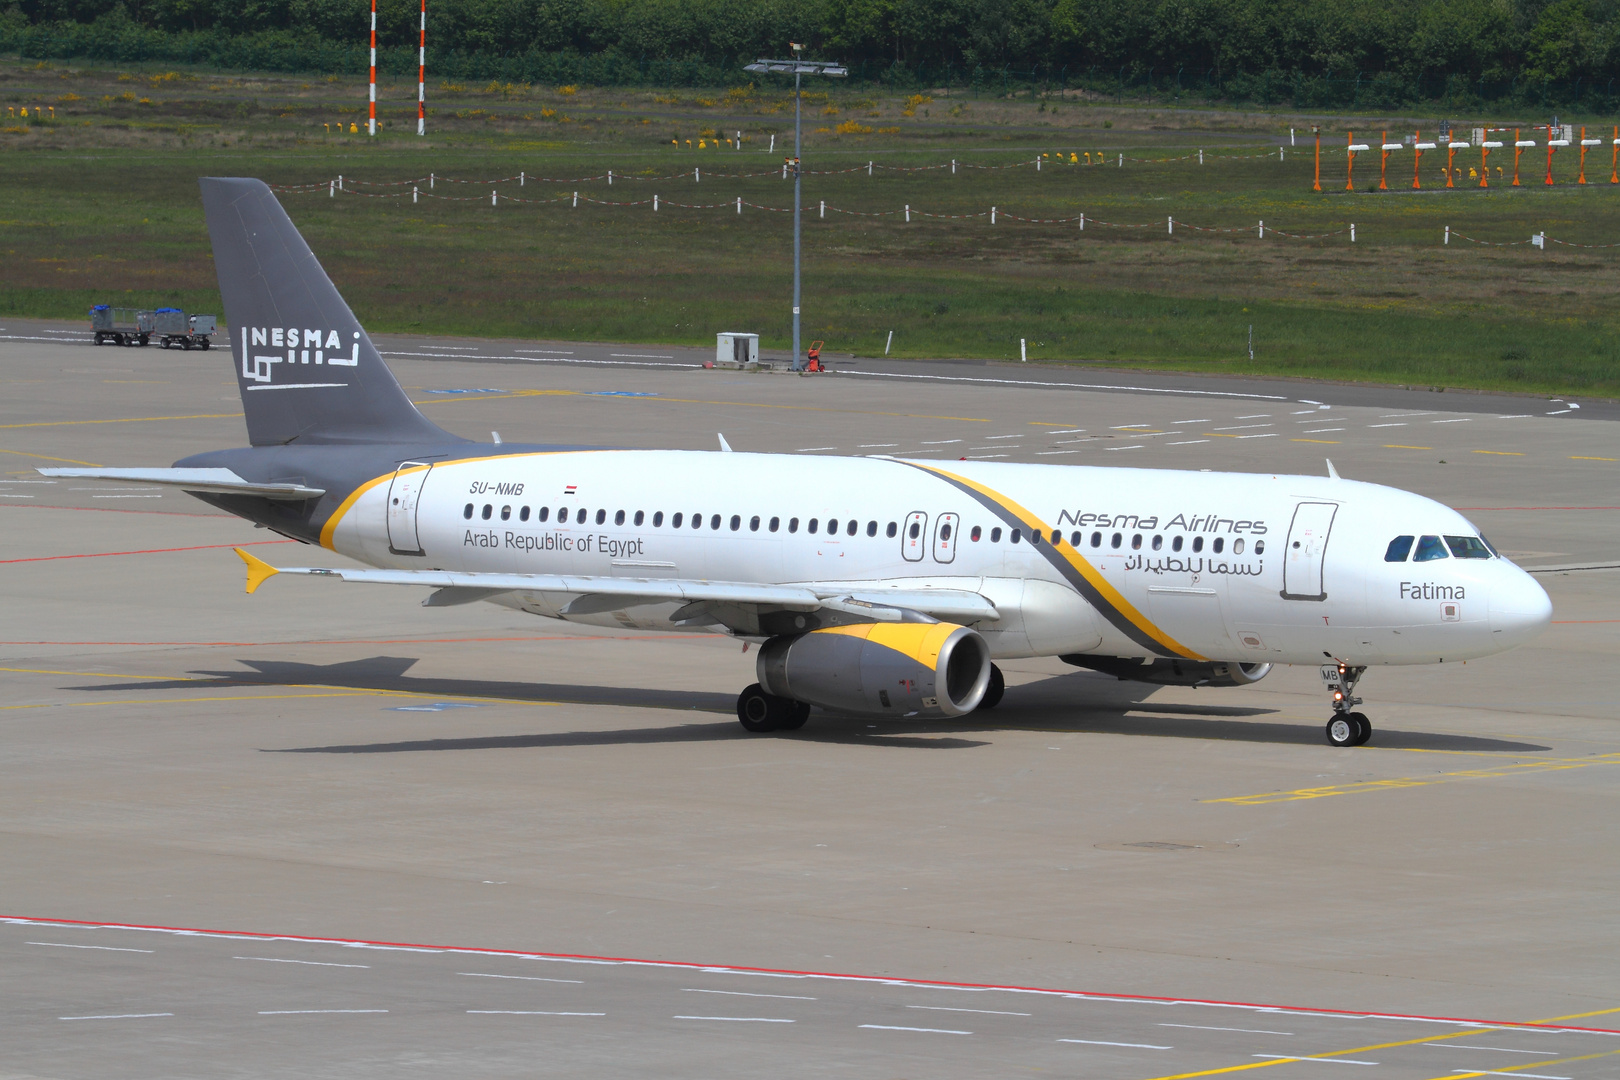 Airbus A320-200 Nesma Airlines